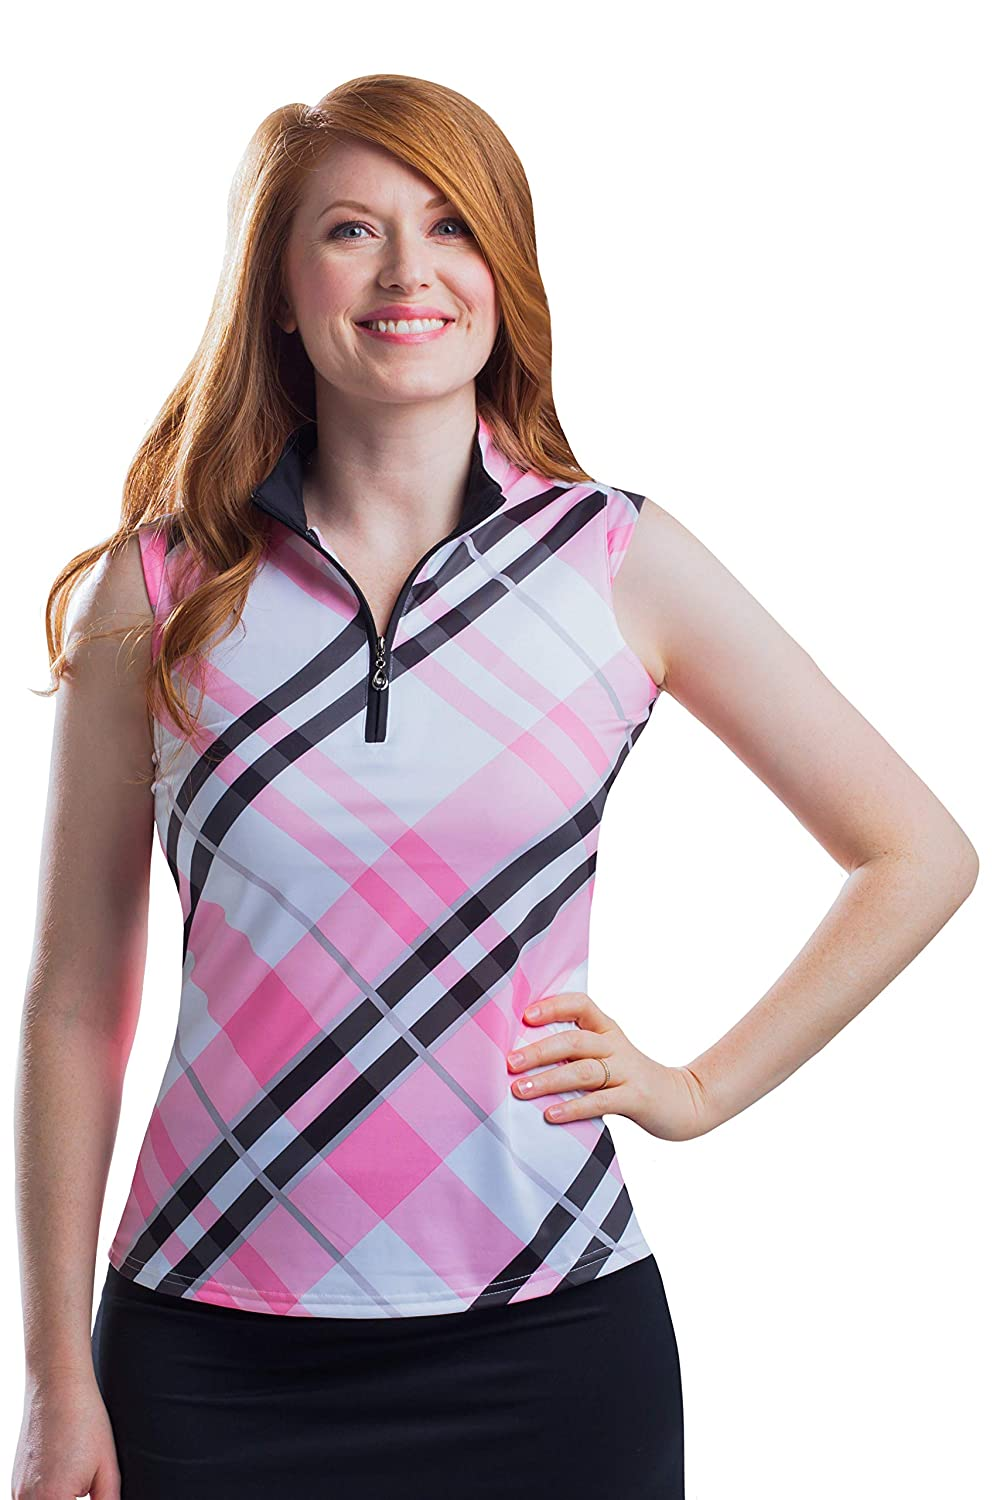 Highlands Pink San Soleil SolCool Printed Sleeveless Mock Neck UV 50 Shirt